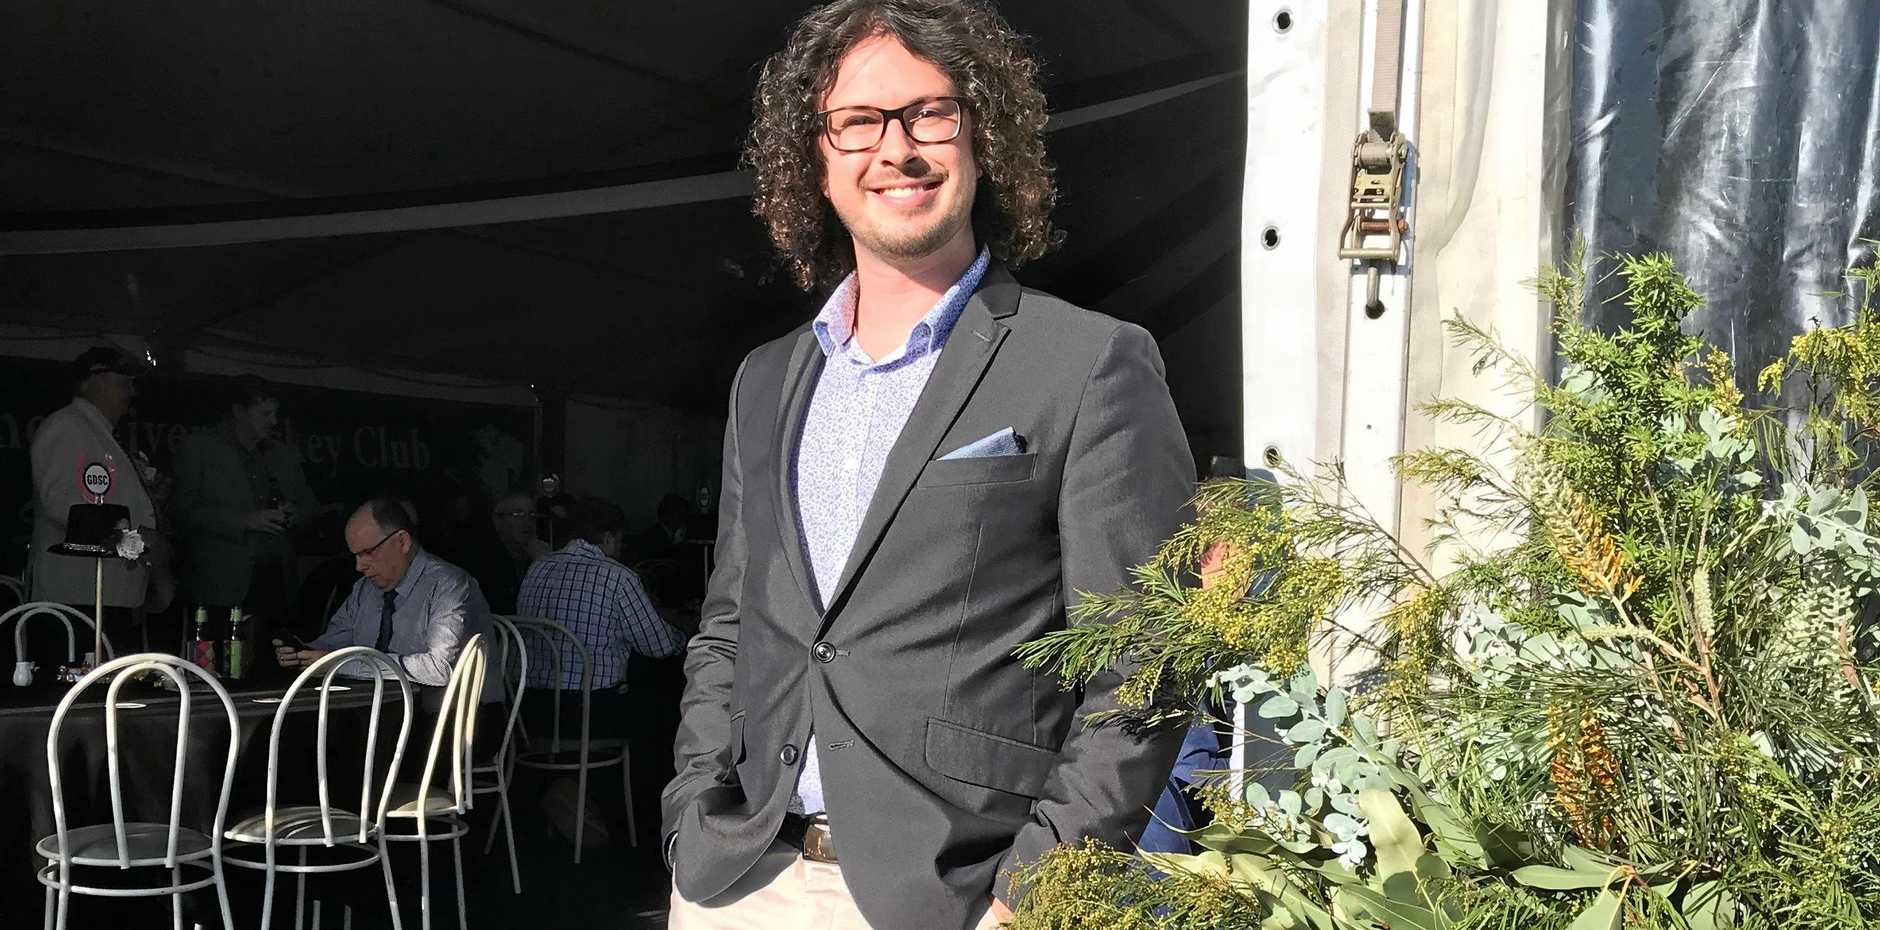 VIP FOR A DAY:  Daily Examiner  journalist Jarrard Potter explores what a day out in the CRJC's Parade Yard Pavilion is really like.